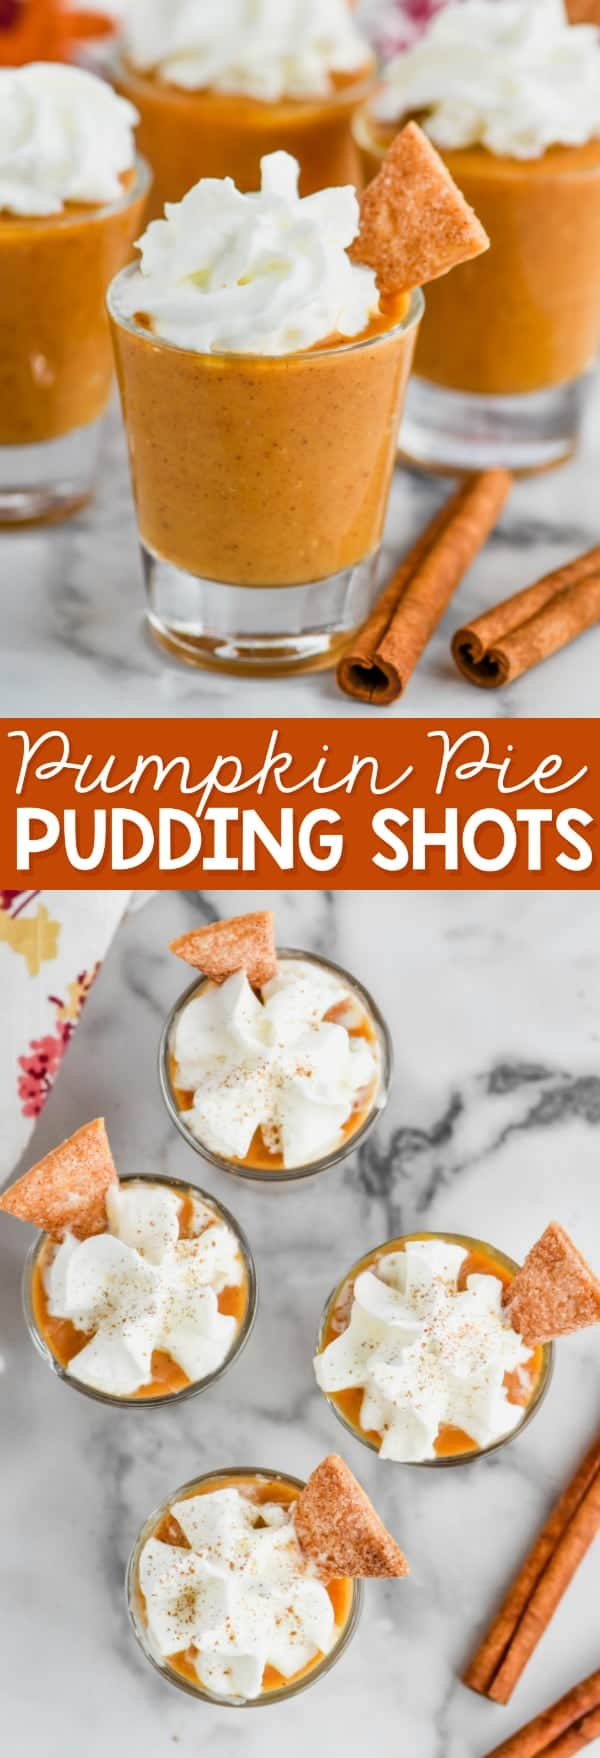 shot glass full of pumpkin pie shot topped with whipped cream